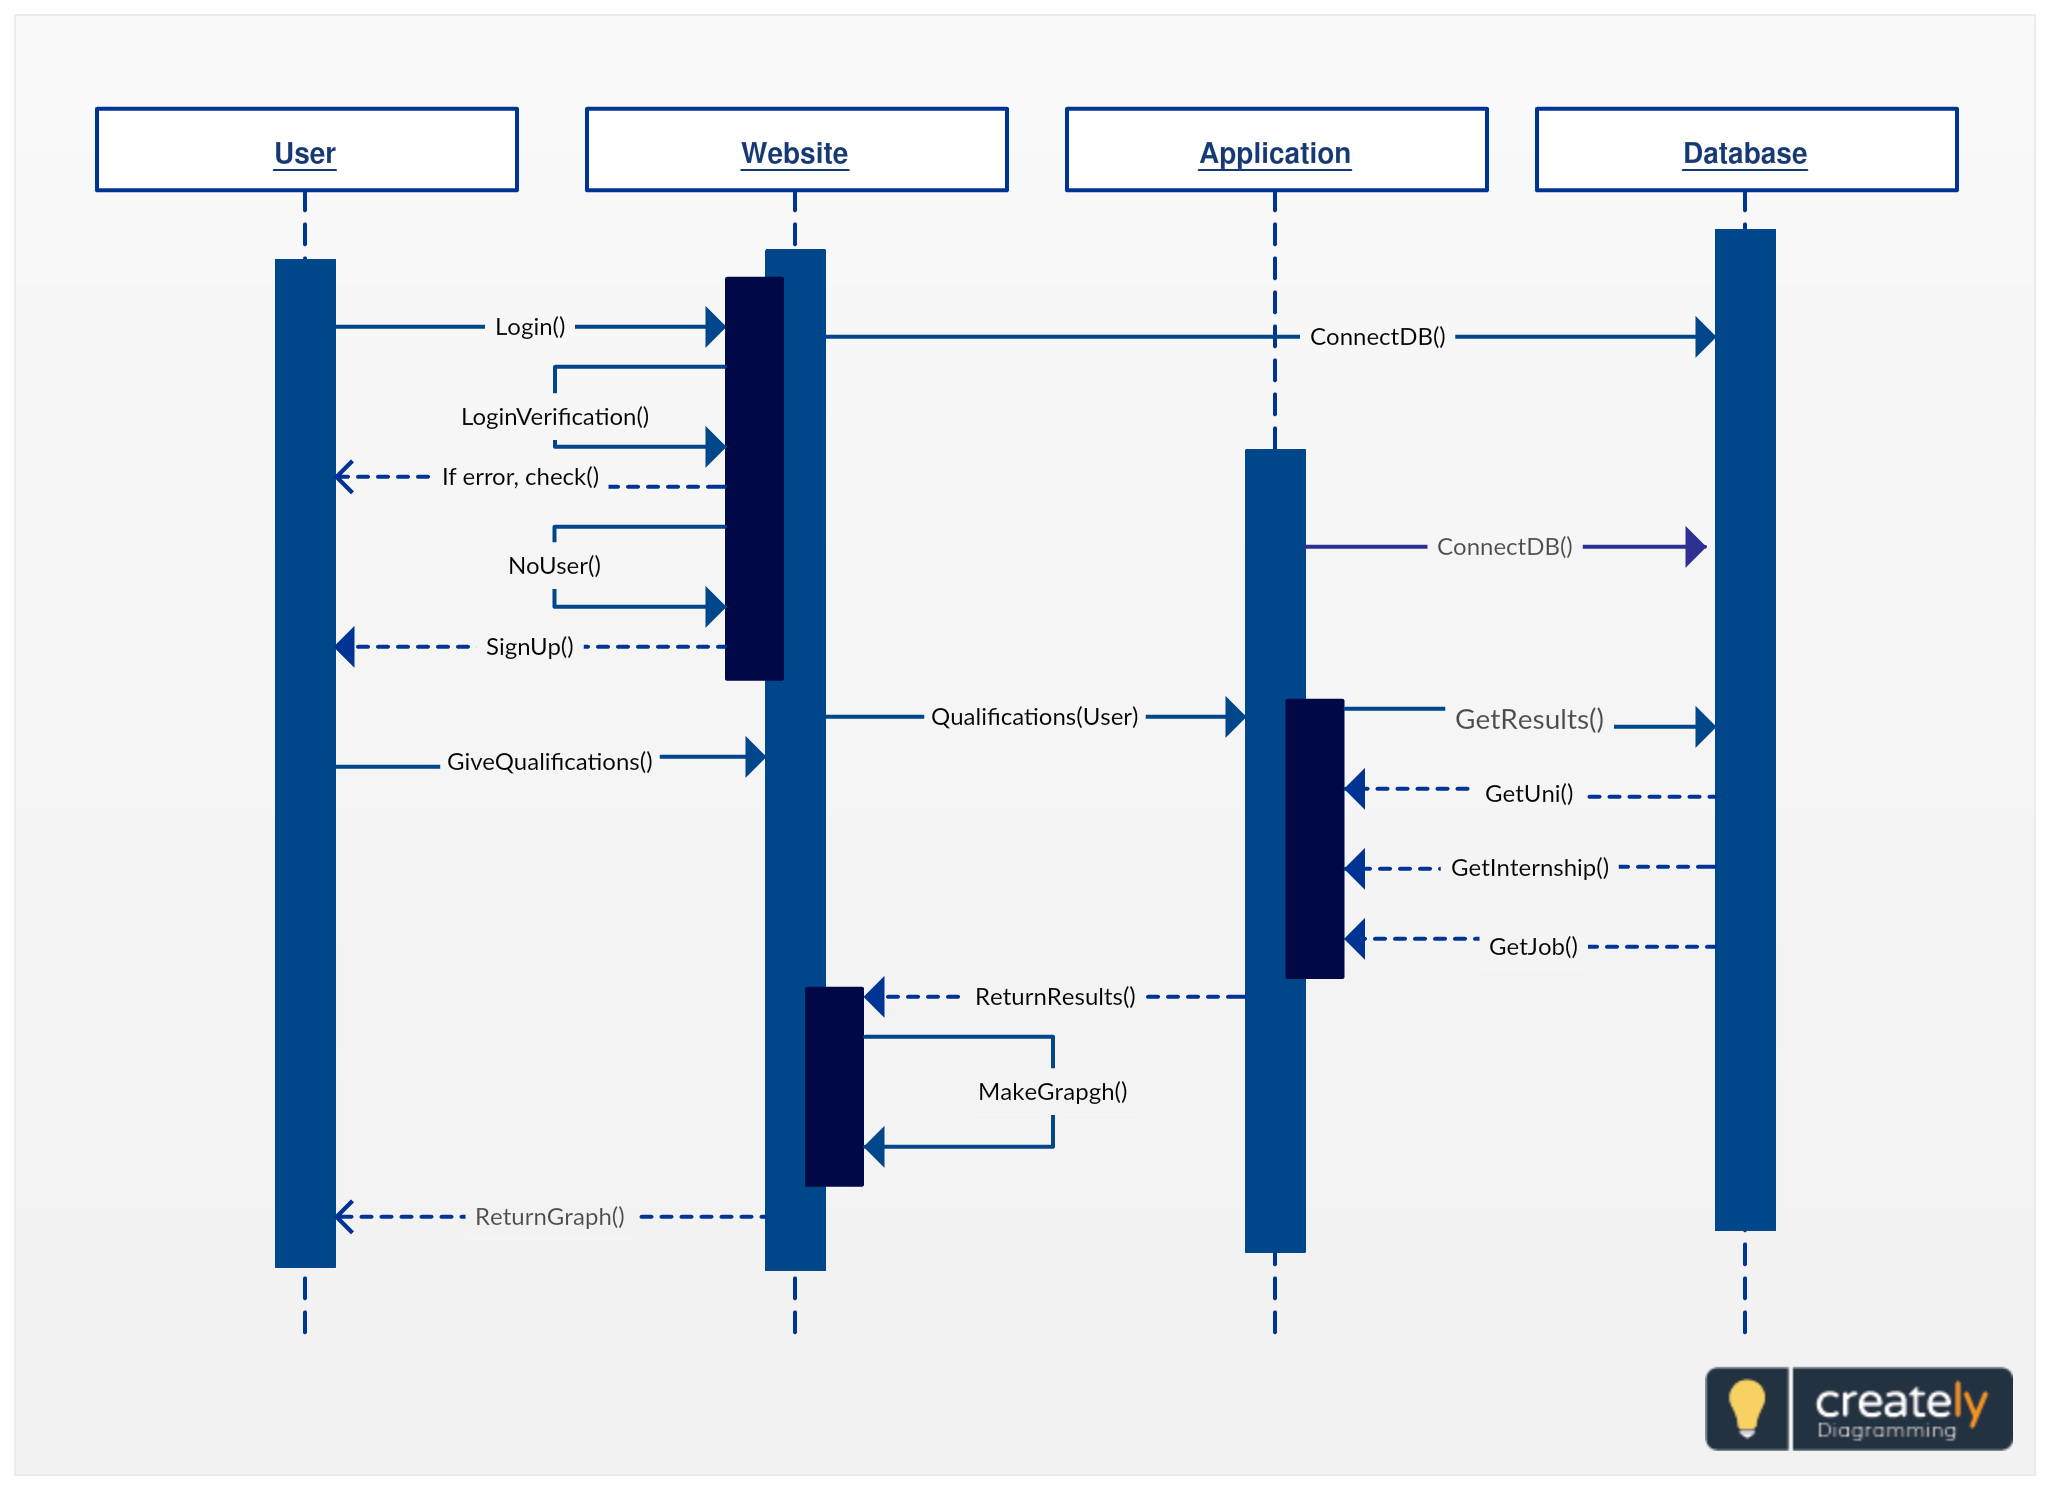 uml sequence diagram for sky canoe sequence diagram shows the user interaction in the system to sign up click on the diagram to edit online and download  [ 2050 x 1490 Pixel ]